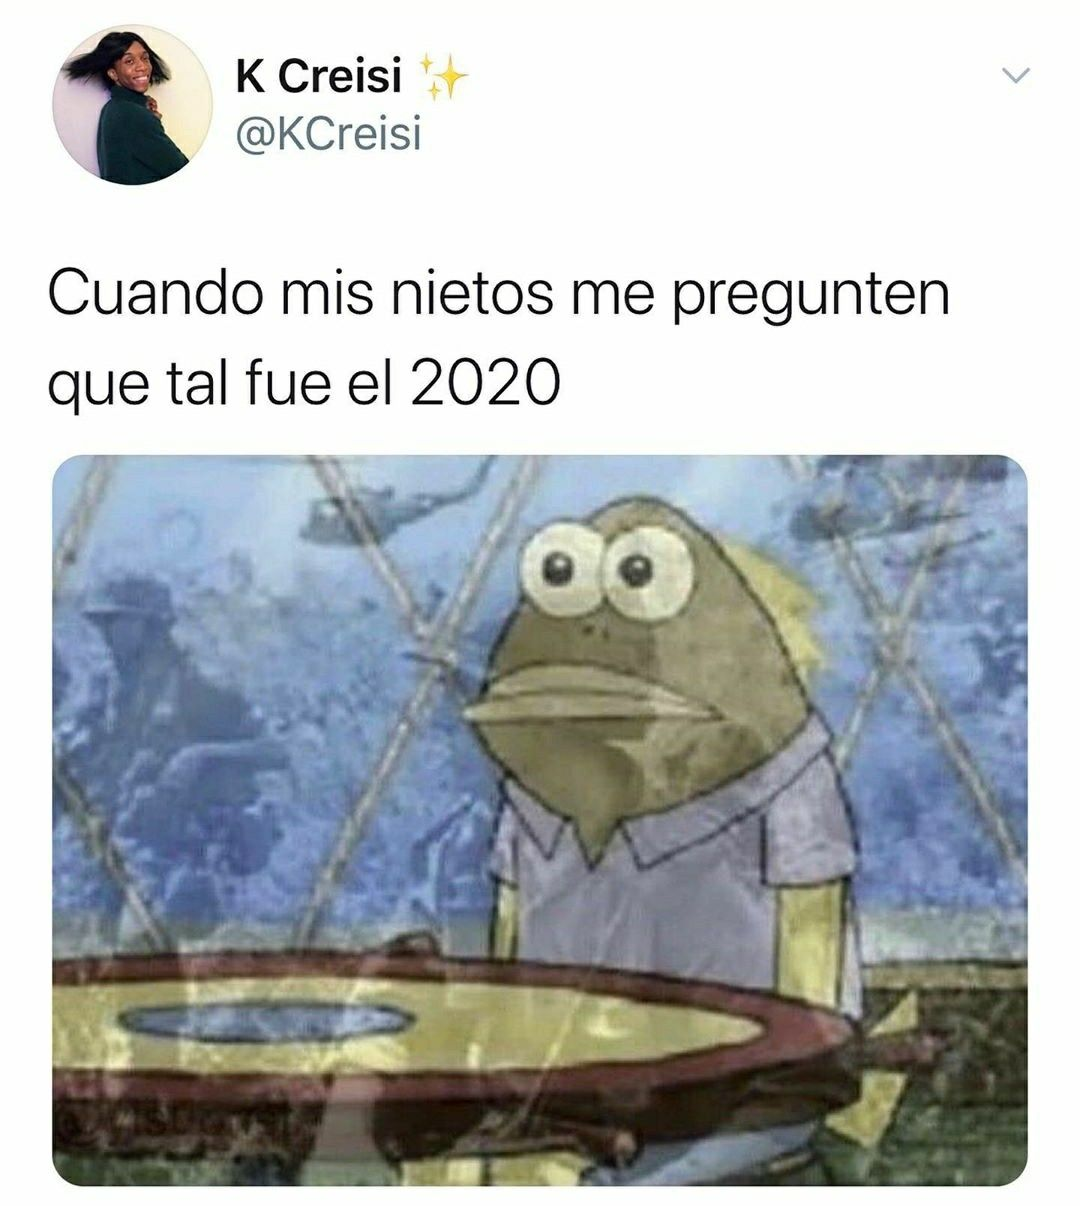 Pin By Saf On Mis Pines Guardados In 2021 Mexican Funny Memes Funny Spanish Memes Funny Messages